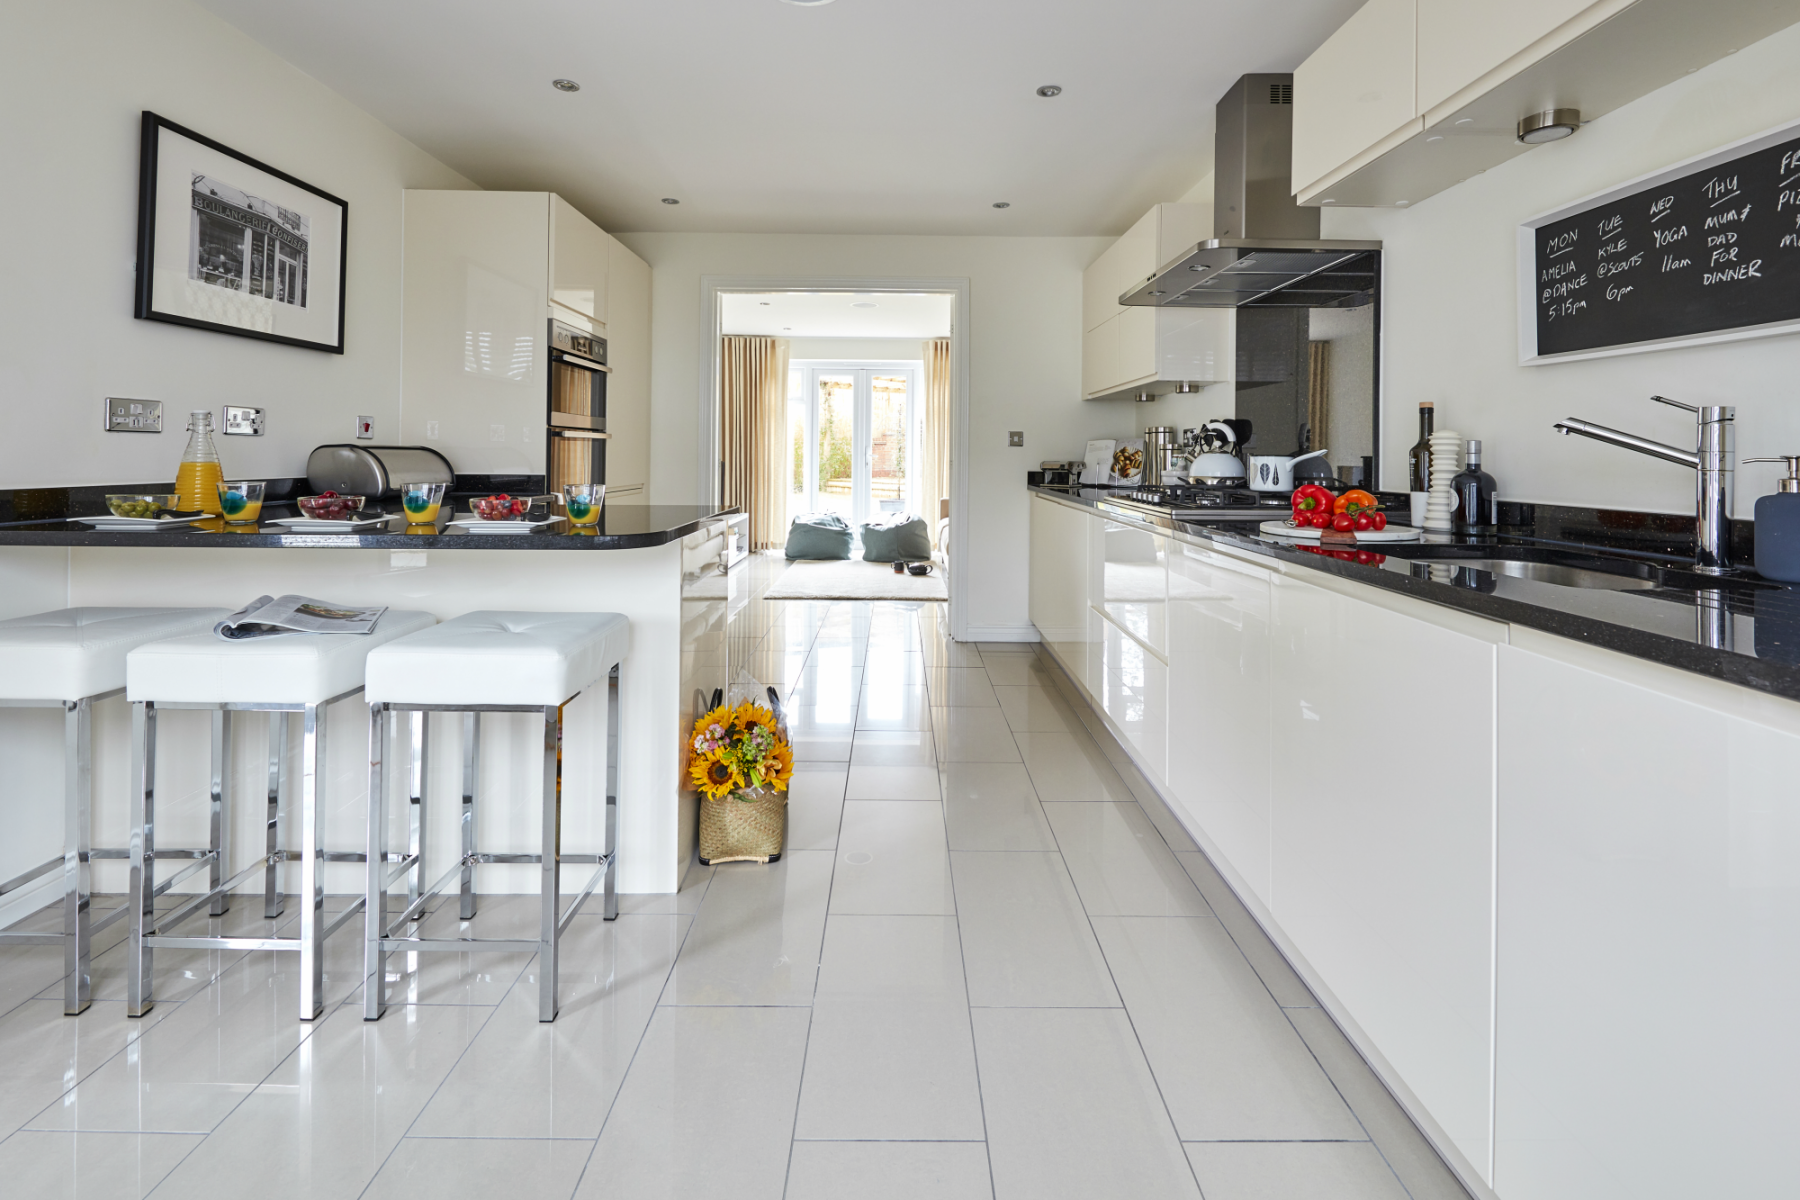 Webfile TWNWApplewoodGreenKelsall_PA49_Thornford_Kitchen